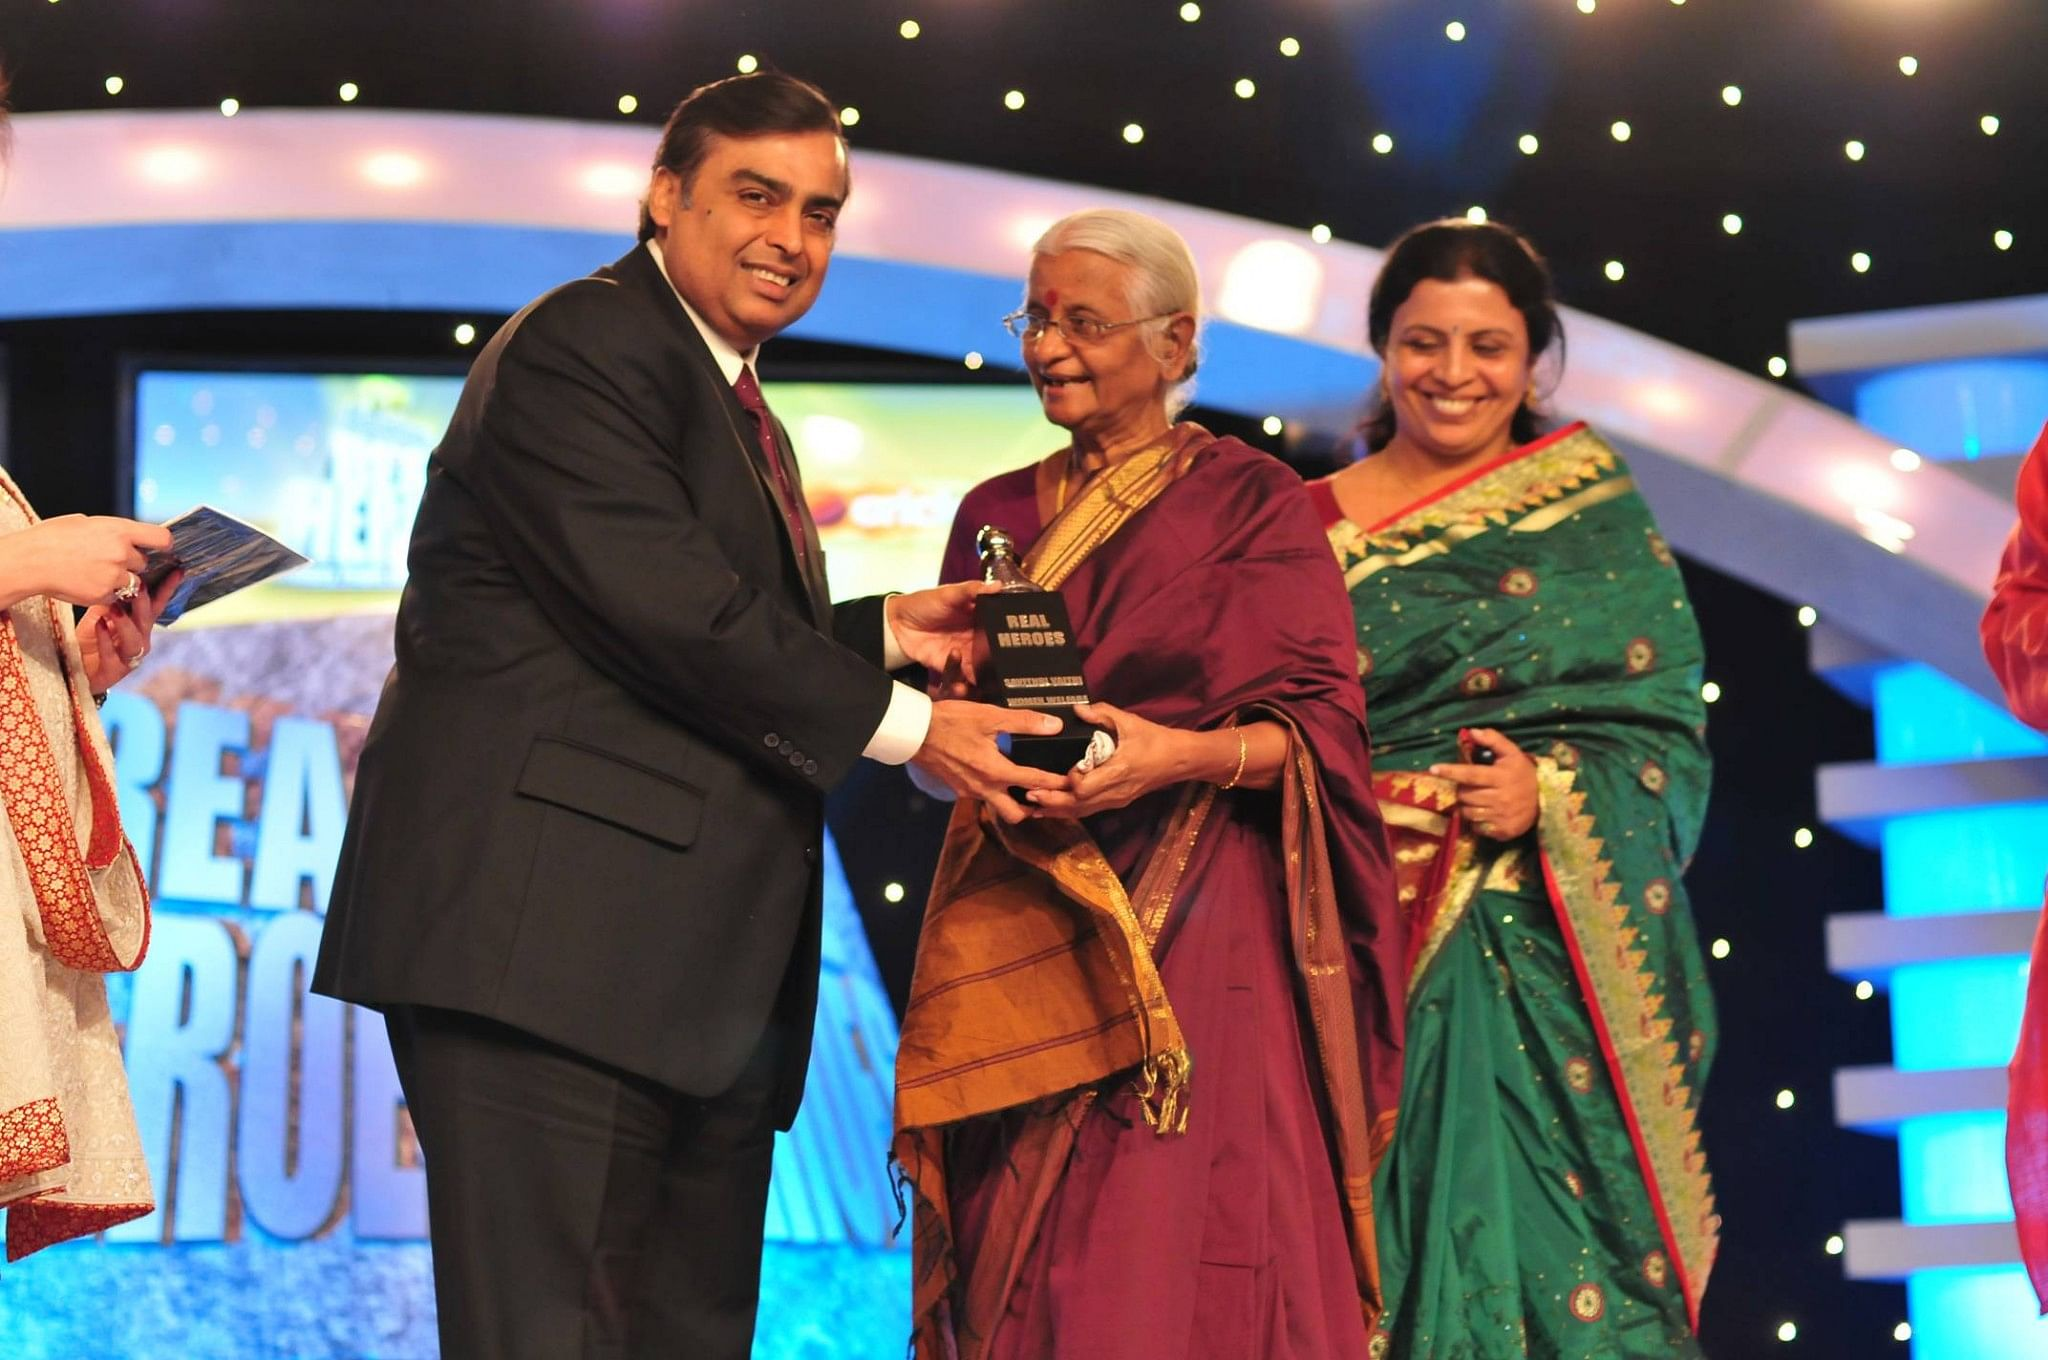 Savithri (center) along with Srilekha (right) at the CNN IBN awards.